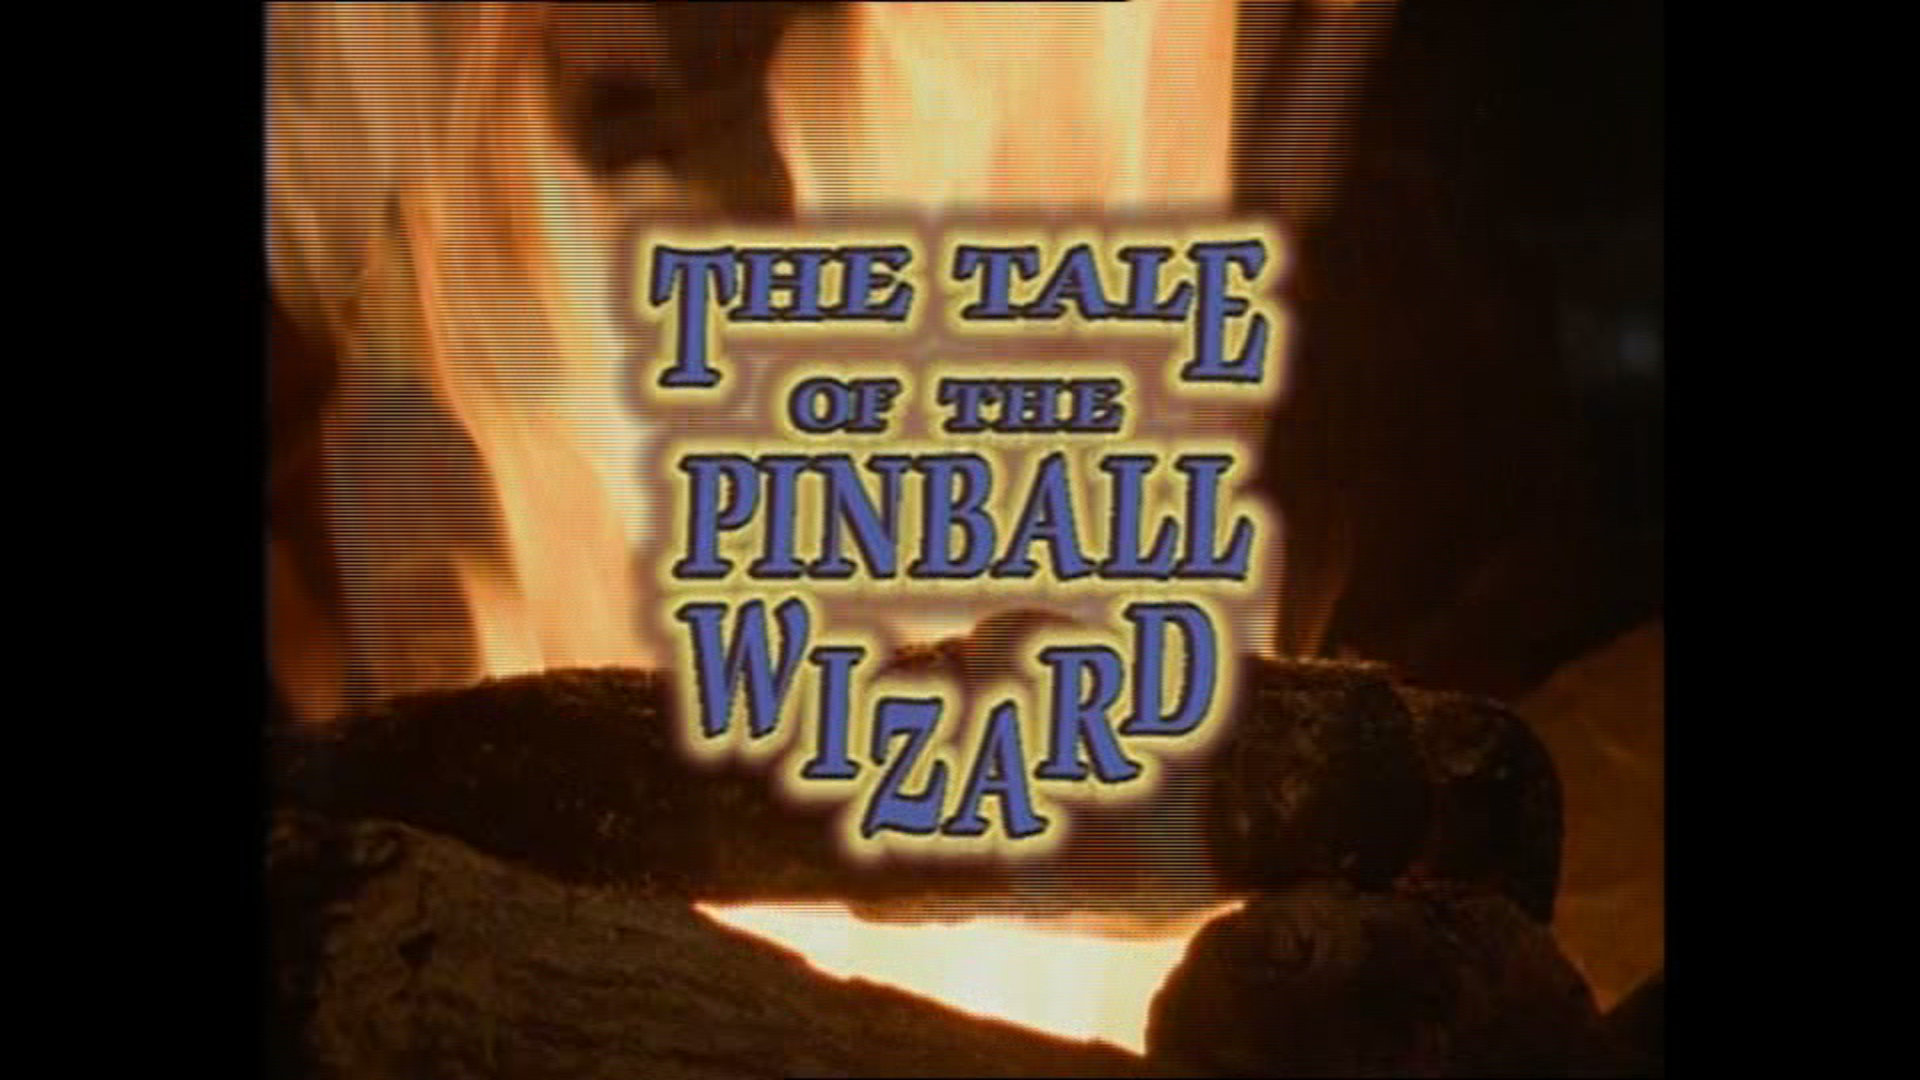 "Are You Afraid of the Dark? S1E13 ""The Tale of the Pinball Wizard"